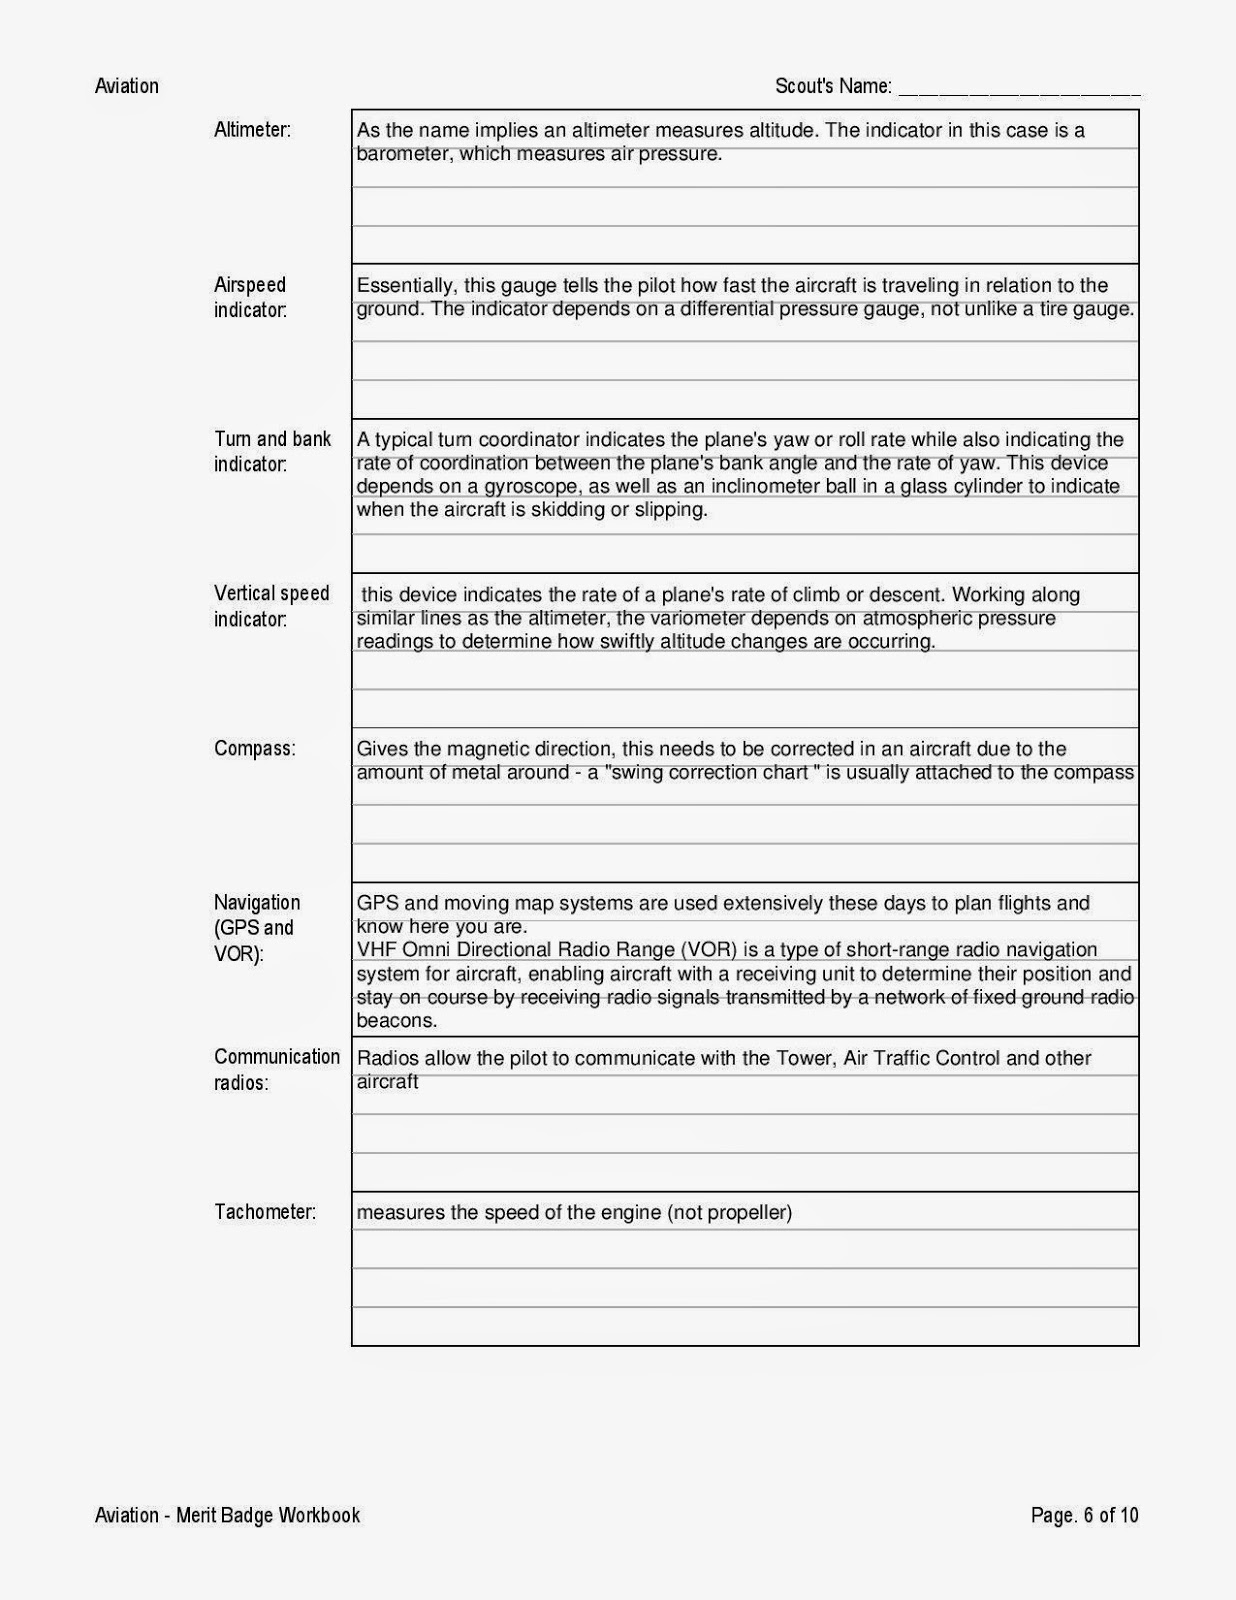 worksheet Family Life Merit Badge Worksheet Answers boy scouts merit badge worksheets garciniapremiums scout troop 107 greensboro nc aviation workbook